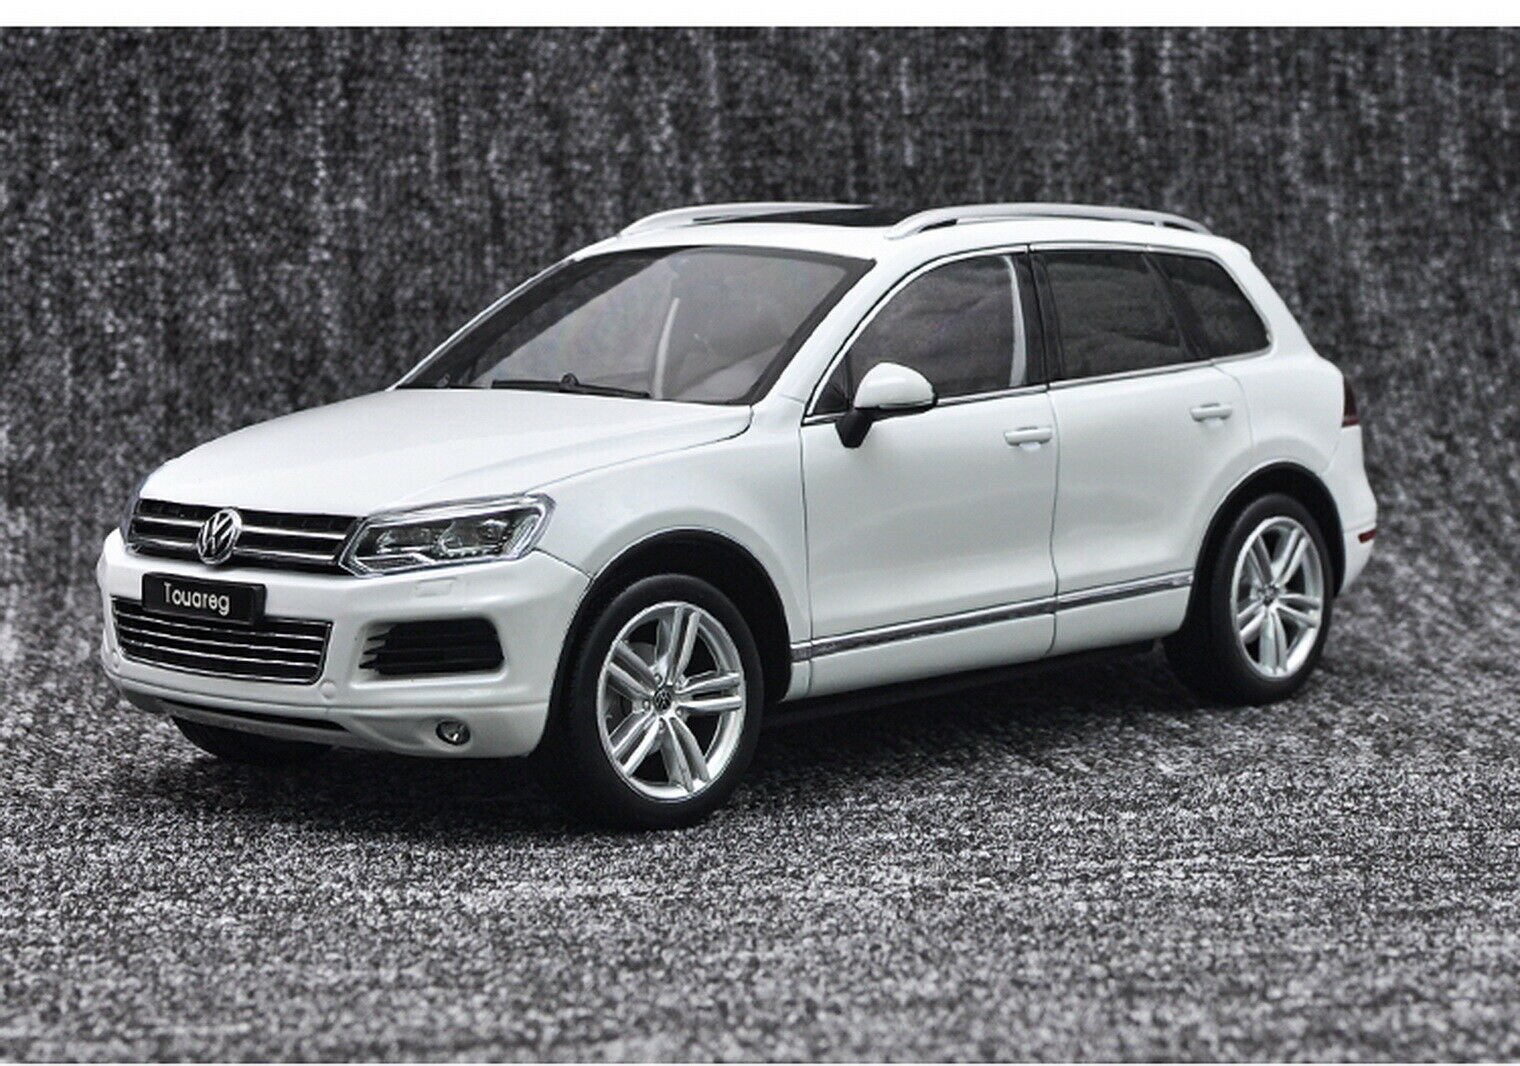 1 18 Scale VW Volkswagen Touareg SUV Weiß Diecast Car Model Toy GT Cars